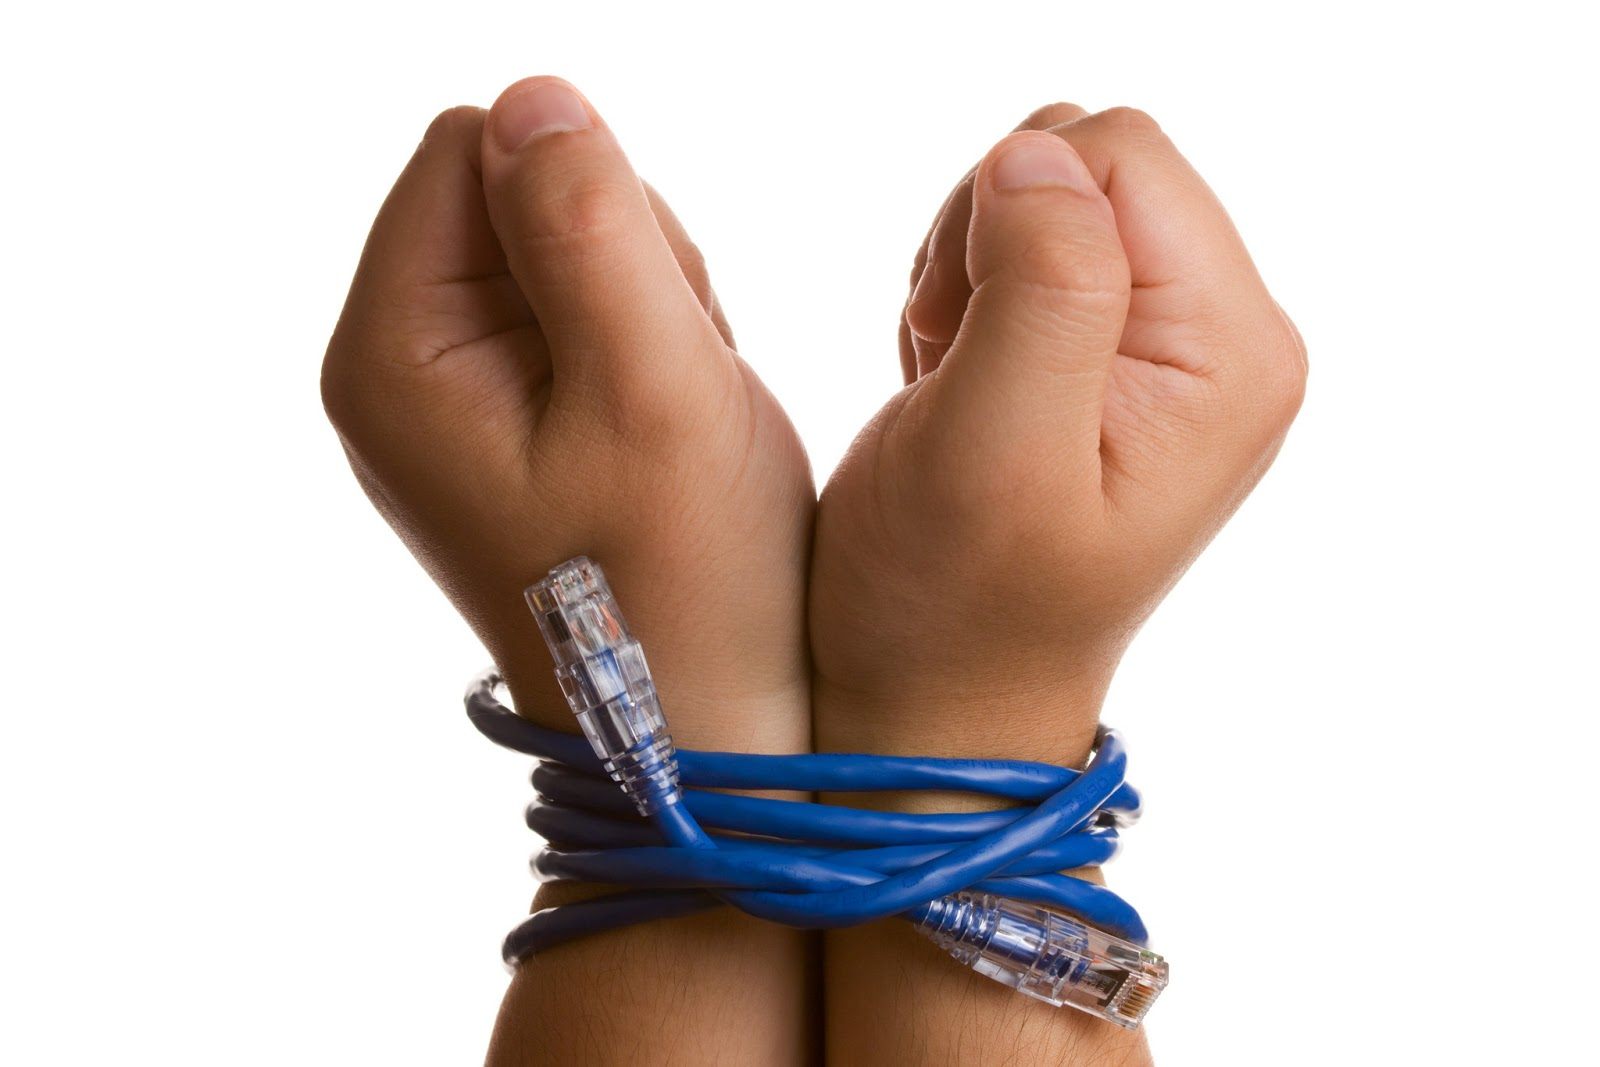 Hand, wrist, or ankle restraints can easily be done with cords, ribbons, tape measures, belts, soft ropes, pantyhose, ties, bandanas or scarves.